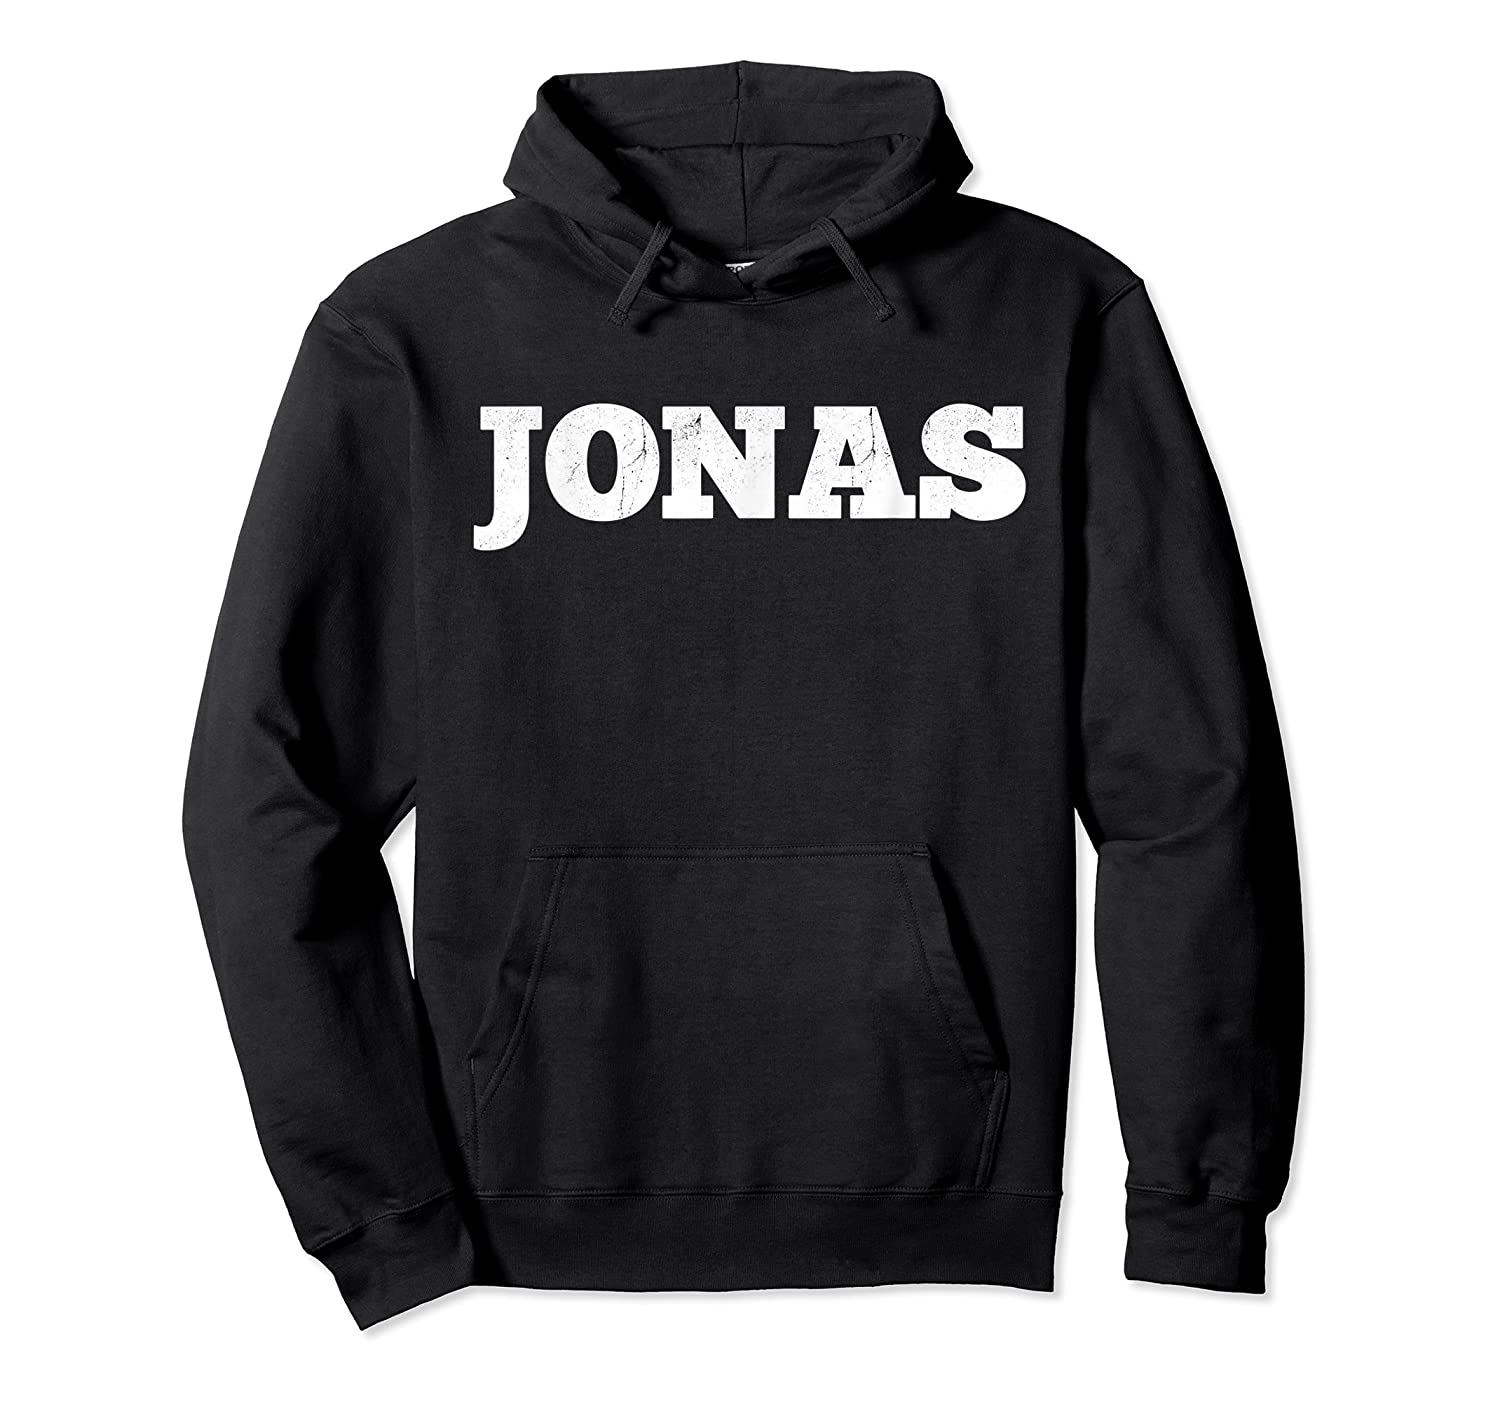 Jonas First Given Name Pride Gift T Shirt Unisex Pullover Hoodie